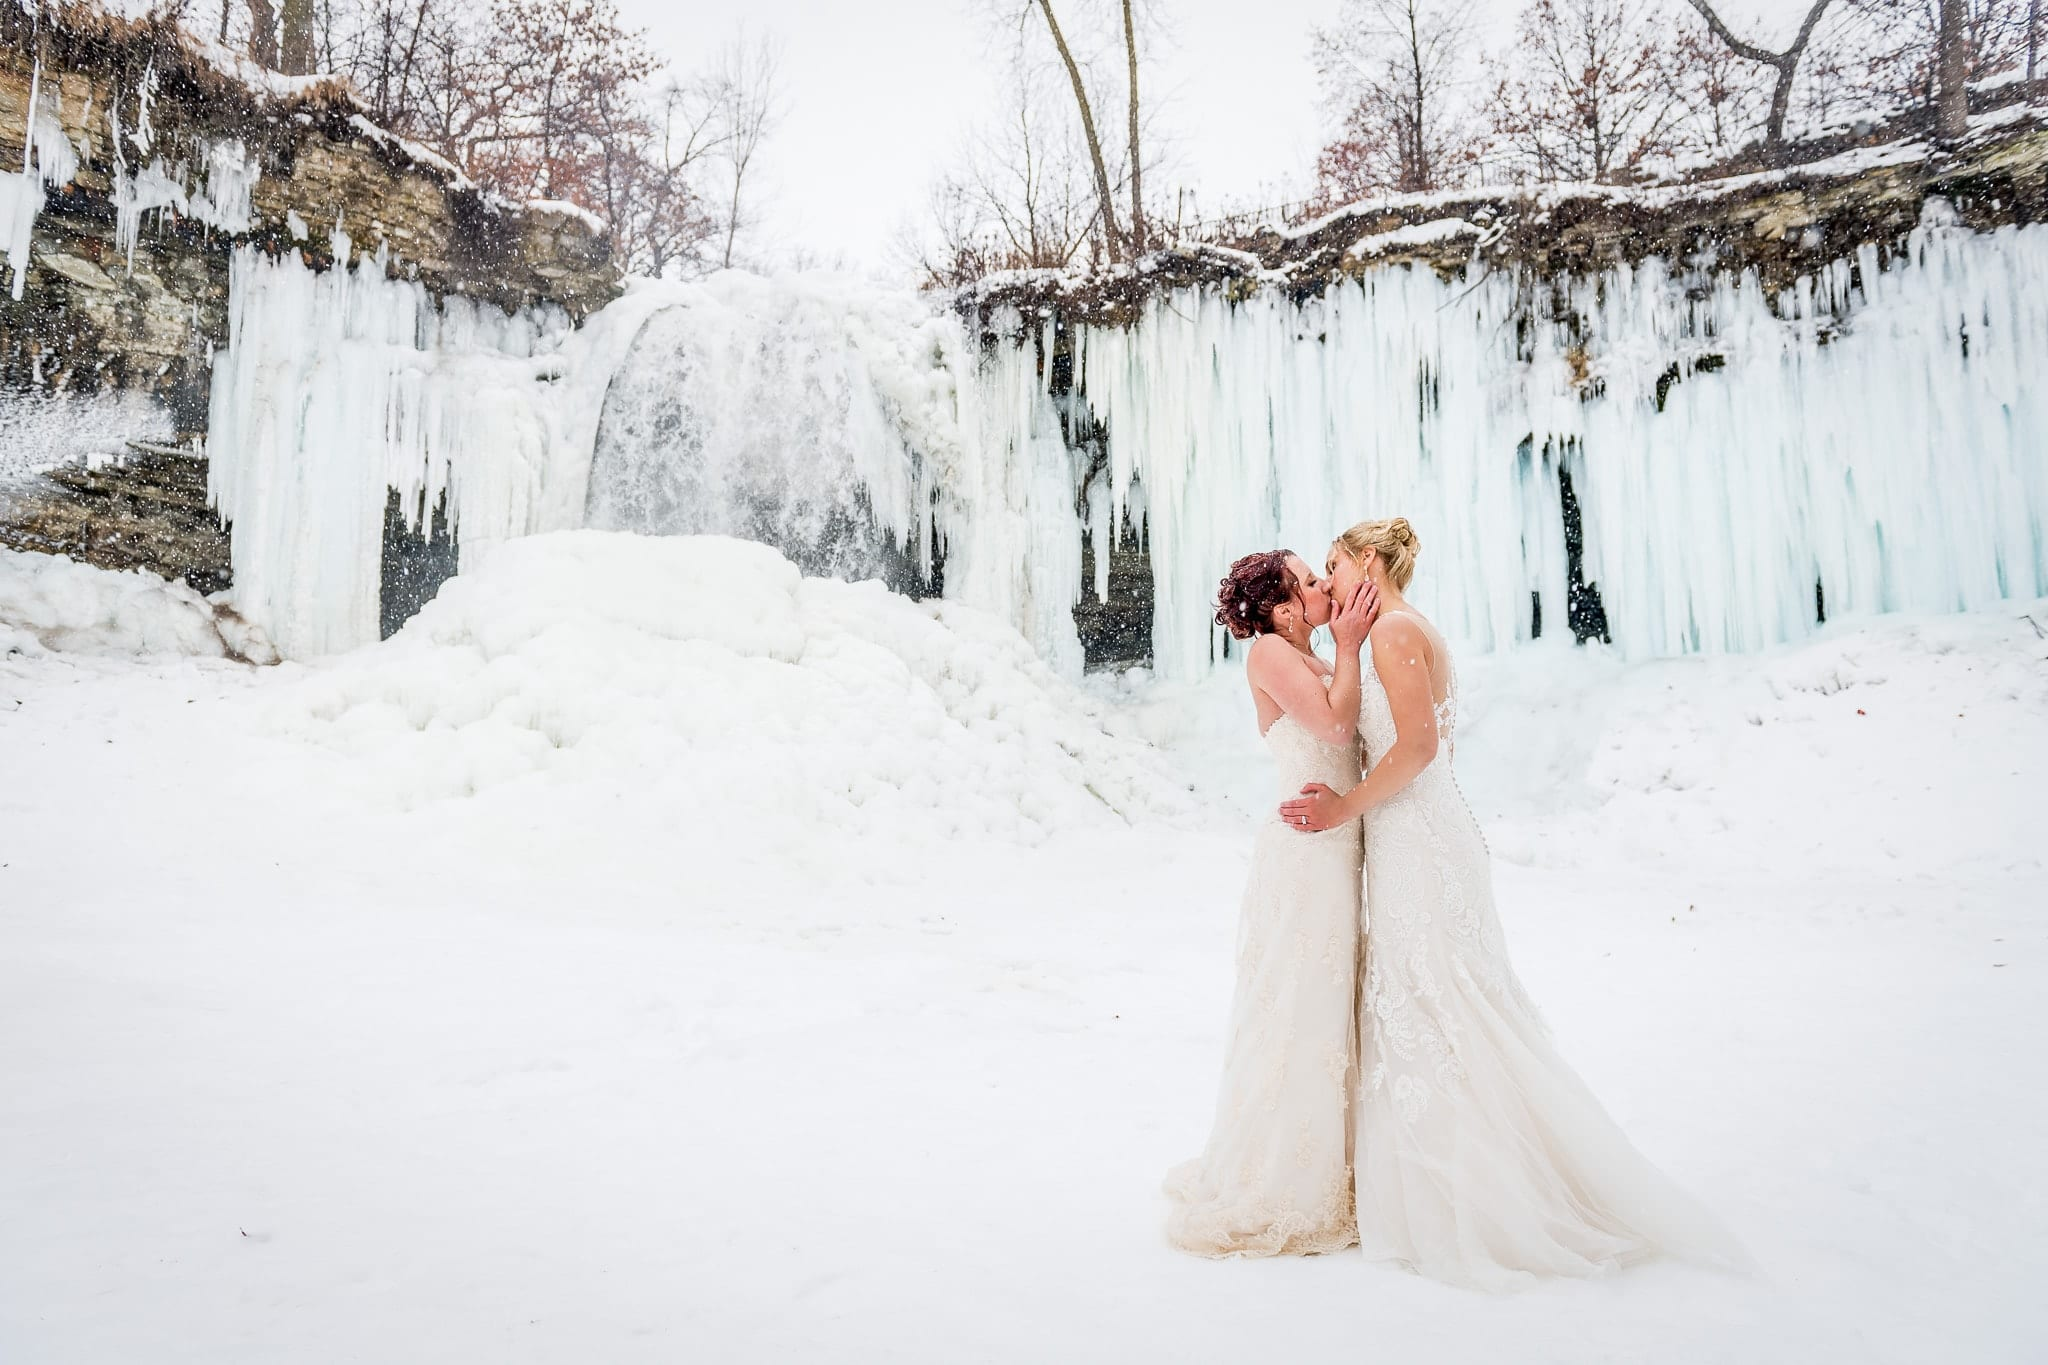 Same sex wedding adventure with two brides at the frozen Minnehaha Falls in Minneapolis